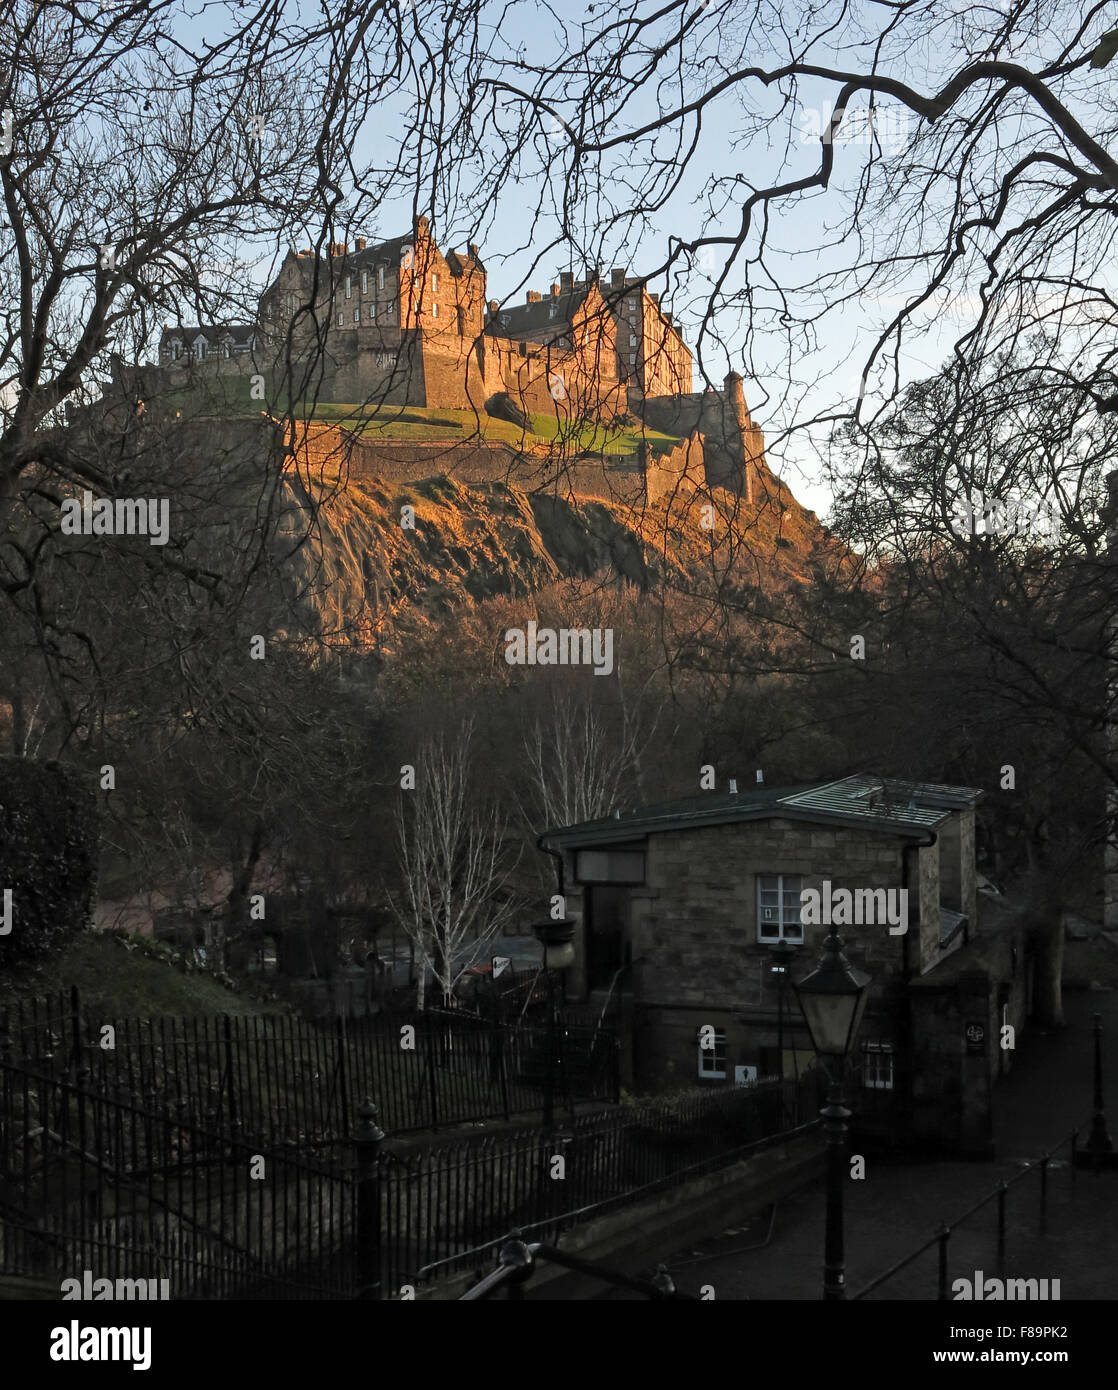 Edinburgh Castle in Winter, Scotland, UK from St Cuthberts graveyard - Stock Image